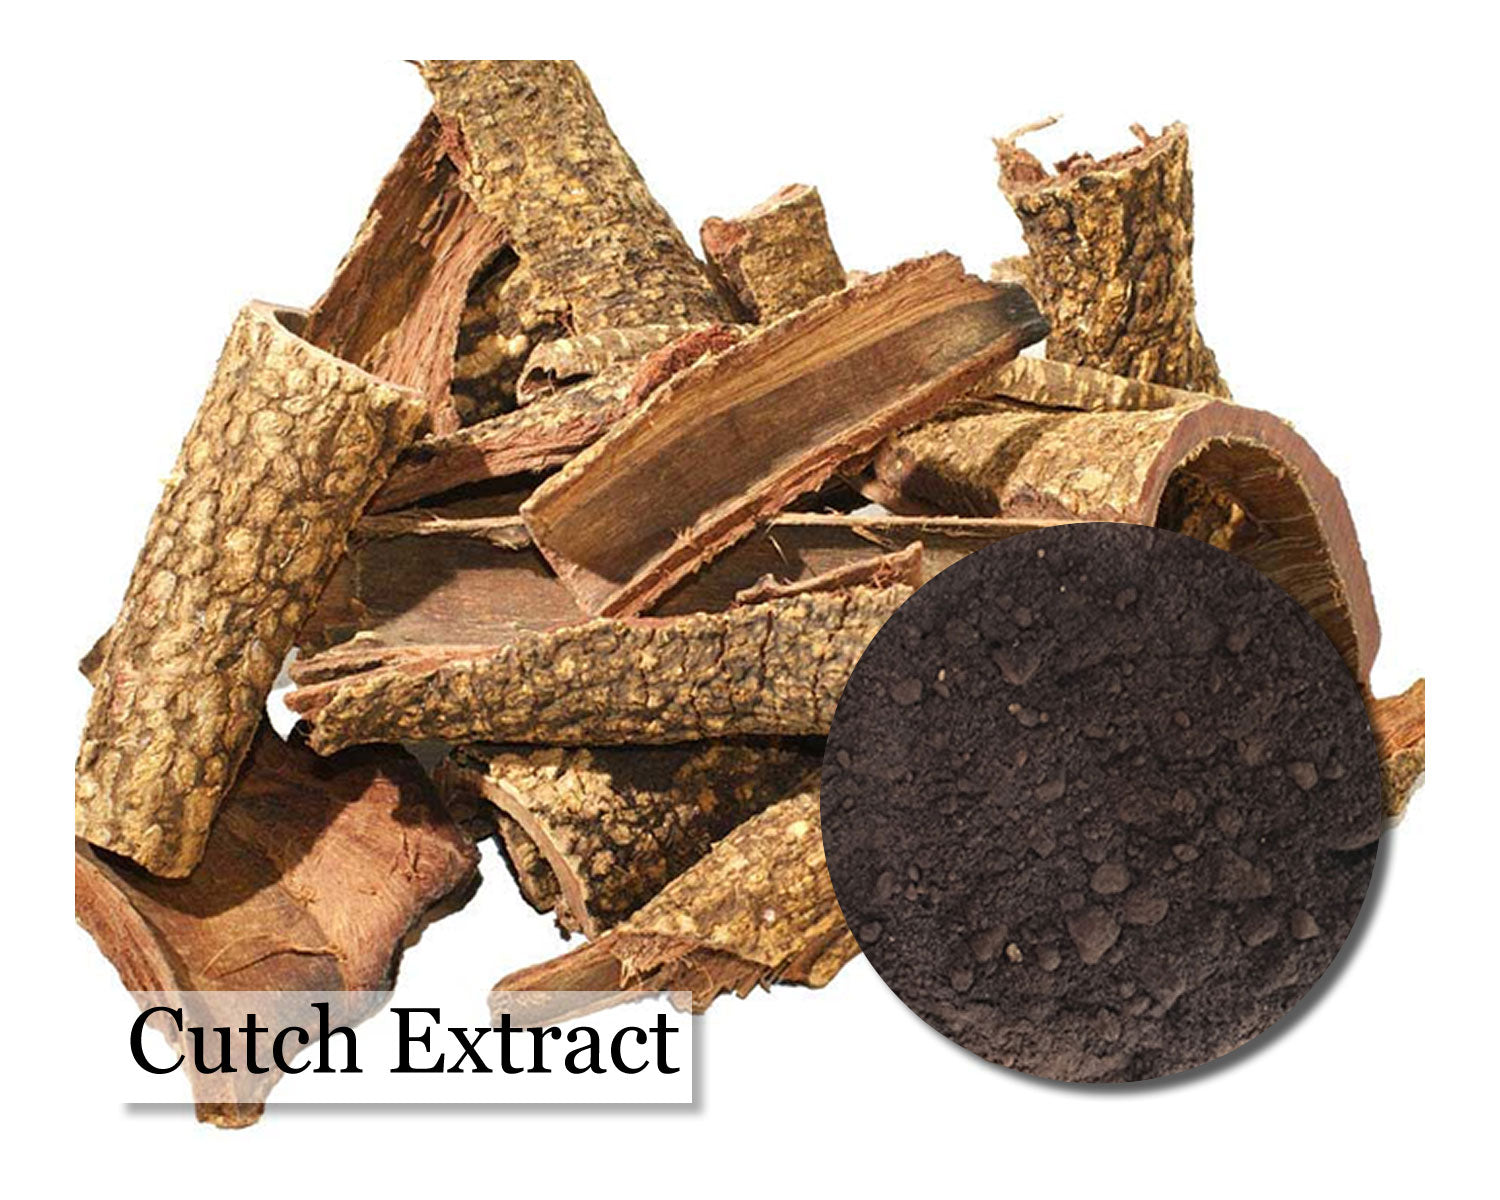 Cutch Extract 16 oz - Wholesale